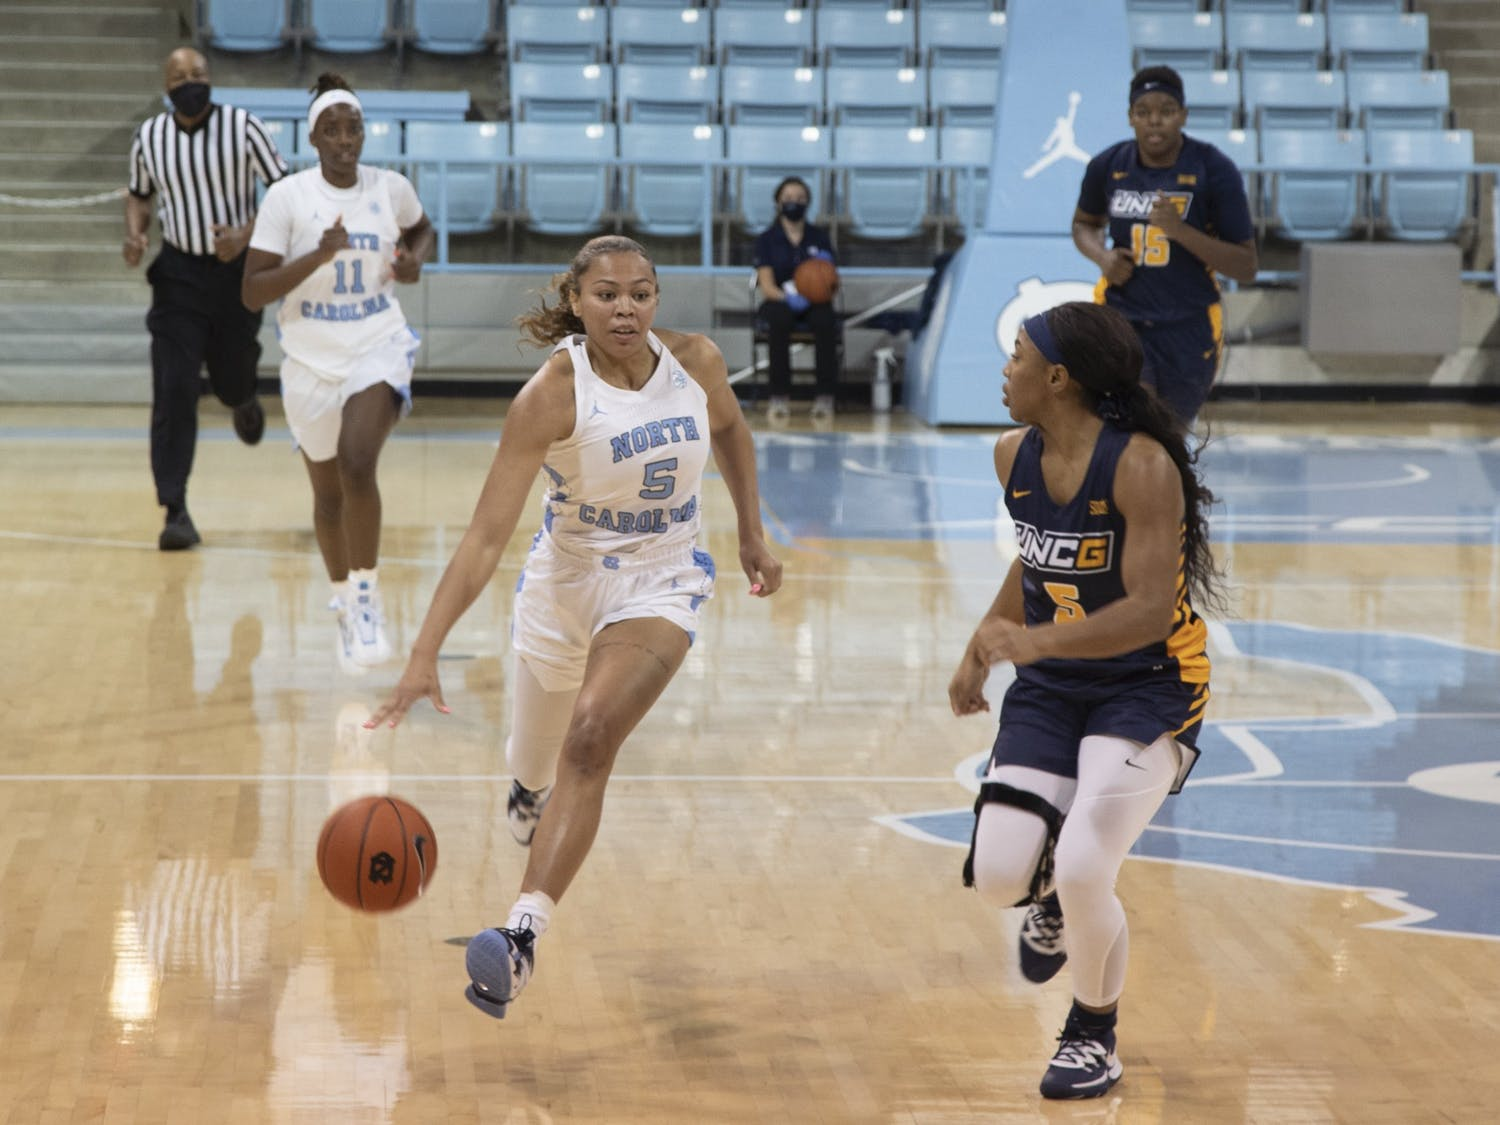 Graduate guard Stephanie Watts (5) drives the ball during the game against UNC-Greensboro in Carmichael Arena on Saturday, Nov. 28, 2020. The Tar Heels defeated the Spartans 96-35.